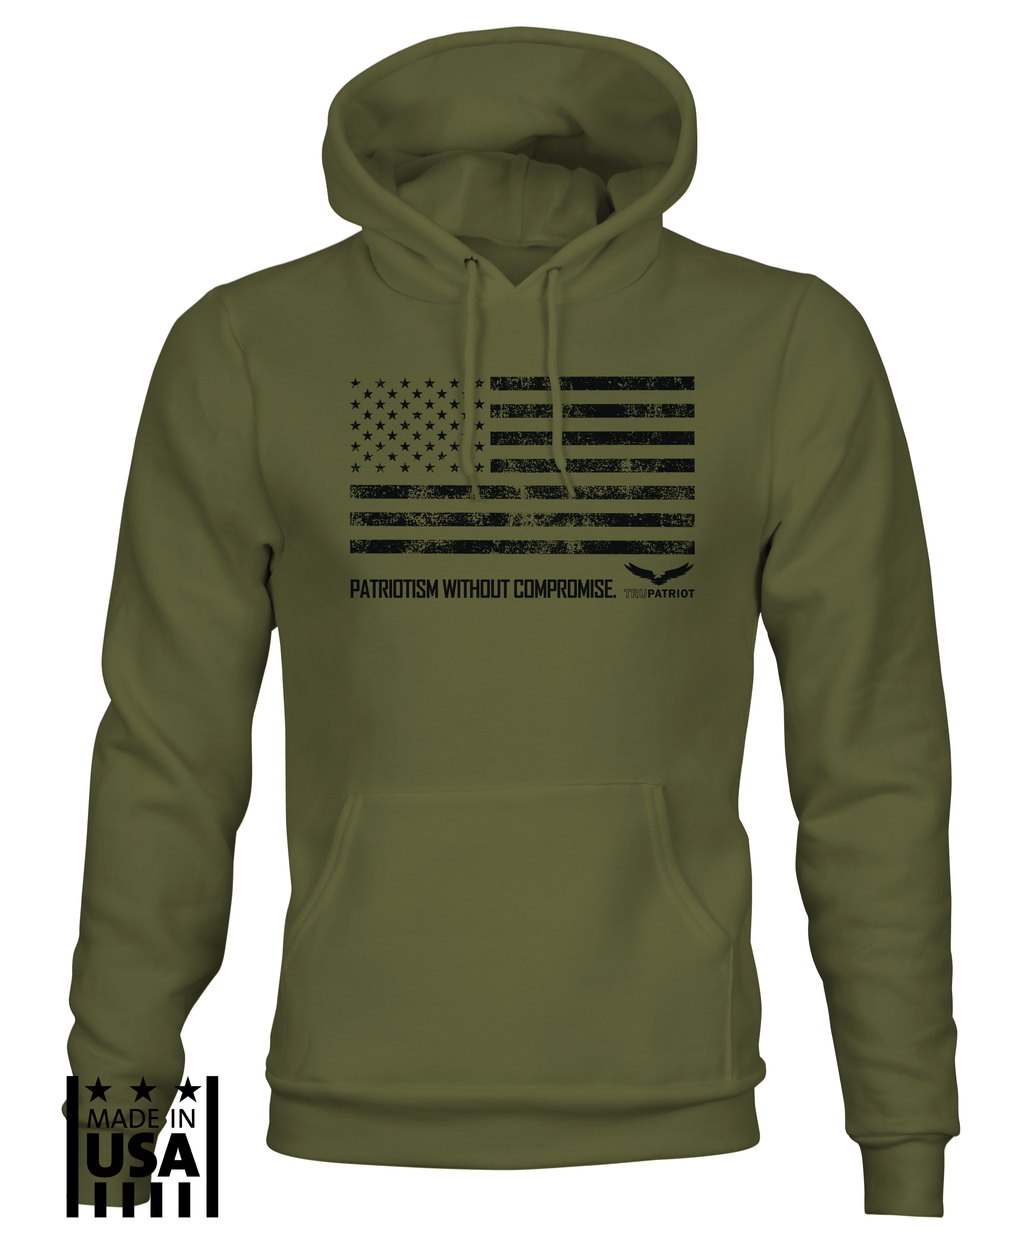 Hoodie: Patriotism Without Compromise - OD Green - TruPatriot